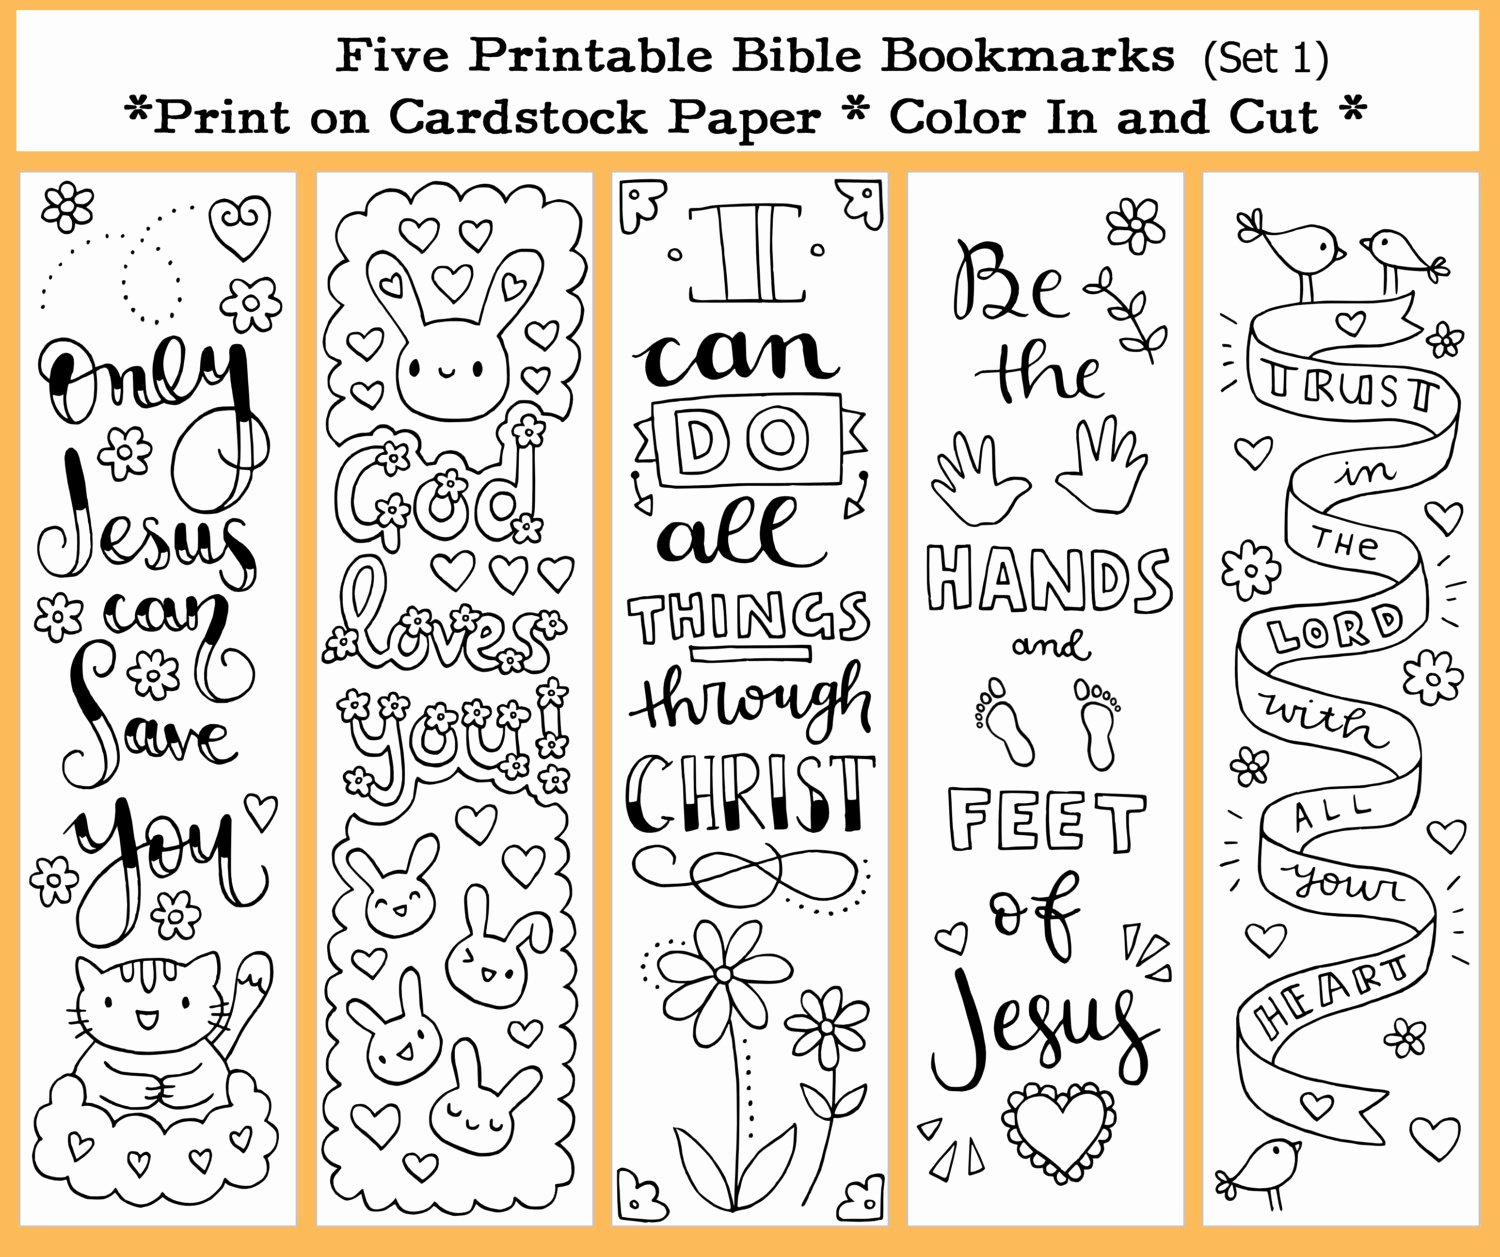 Free Printable Christian Bookmarks Luxury Five Instant Printable Color In Cute Bible Bookmarks